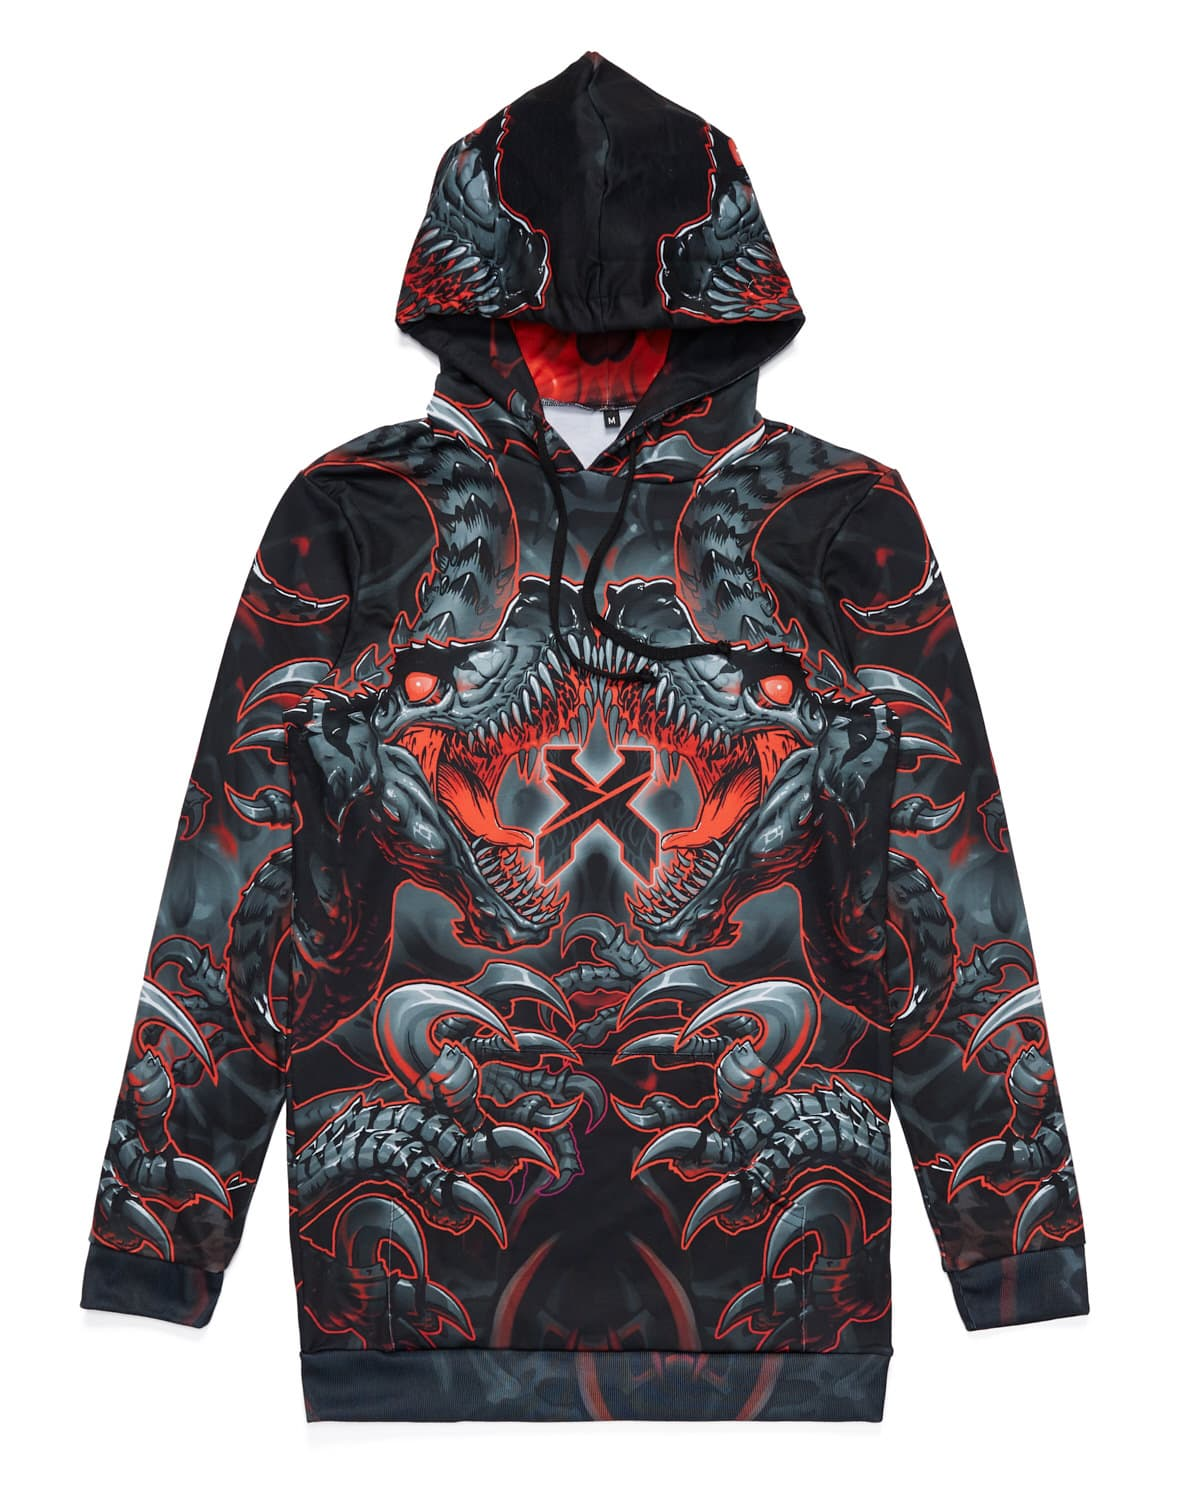 'Raptor Attack' Dye Sub Hoodie Dress - Red